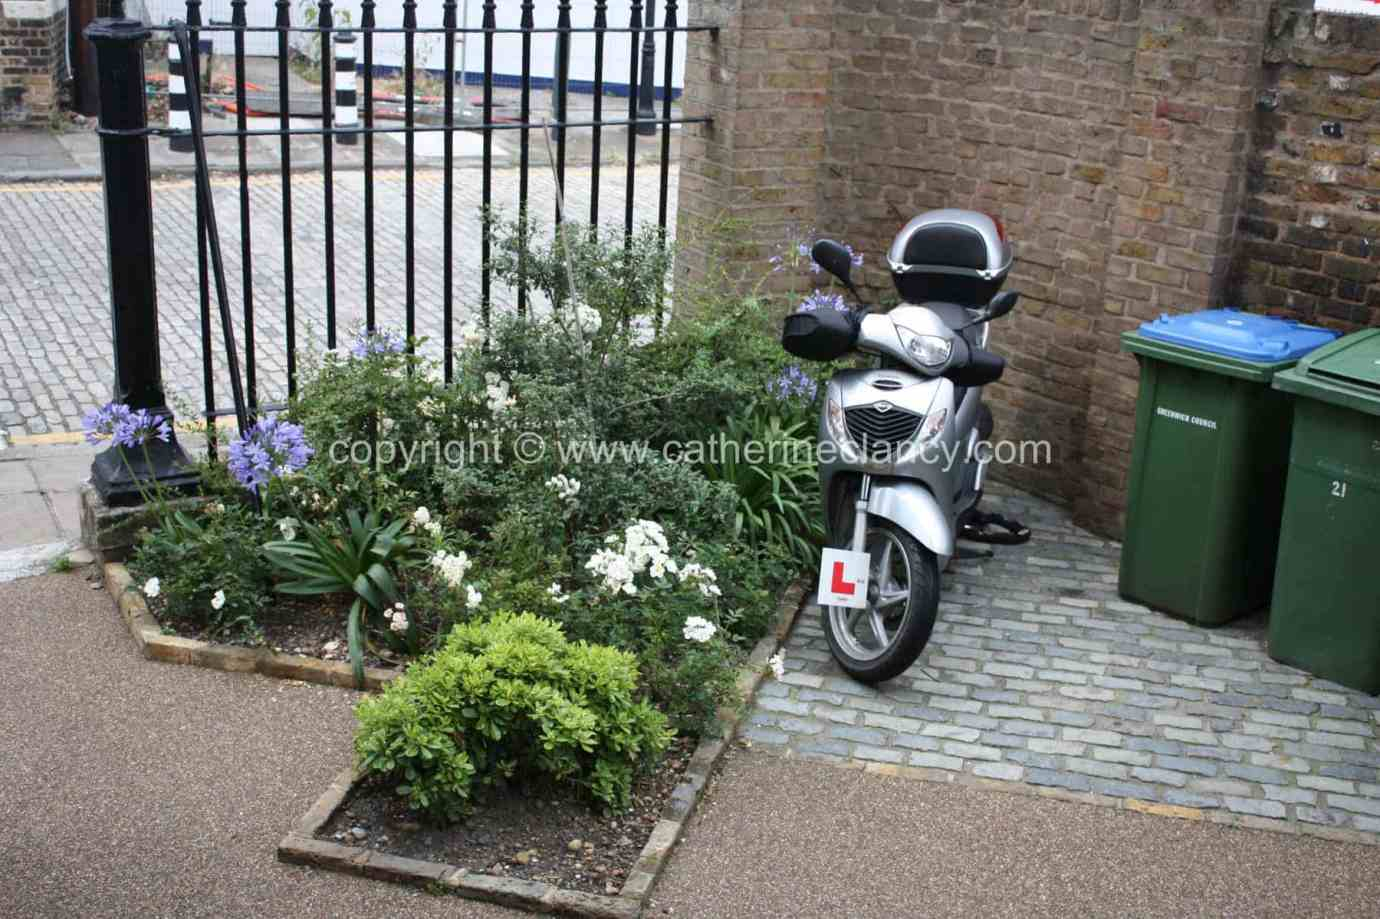 london-courtyard-front-garden-5